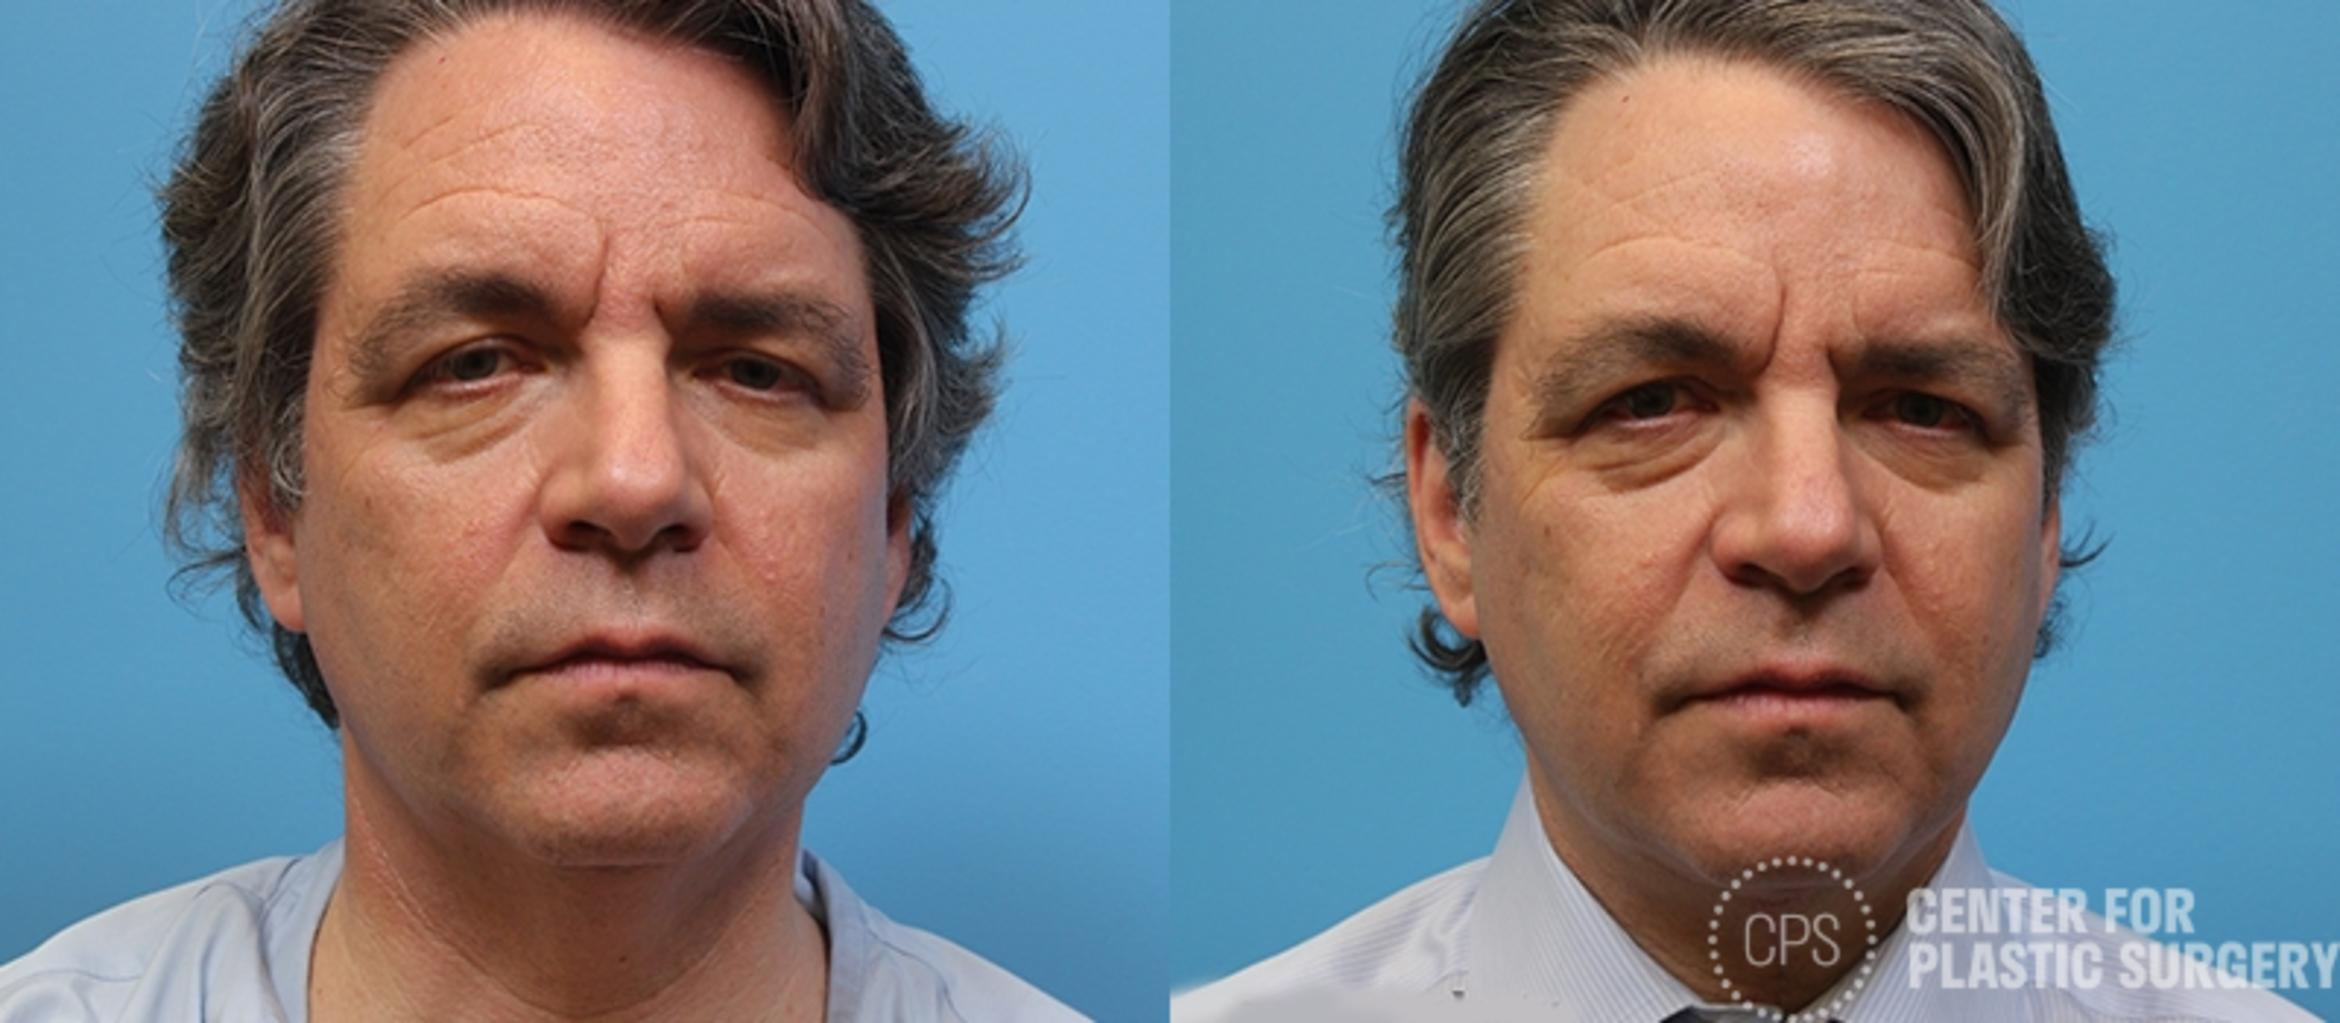 Neck Lift Before & After Photo | Annandale, Virginia | Center for Plastic Surgery